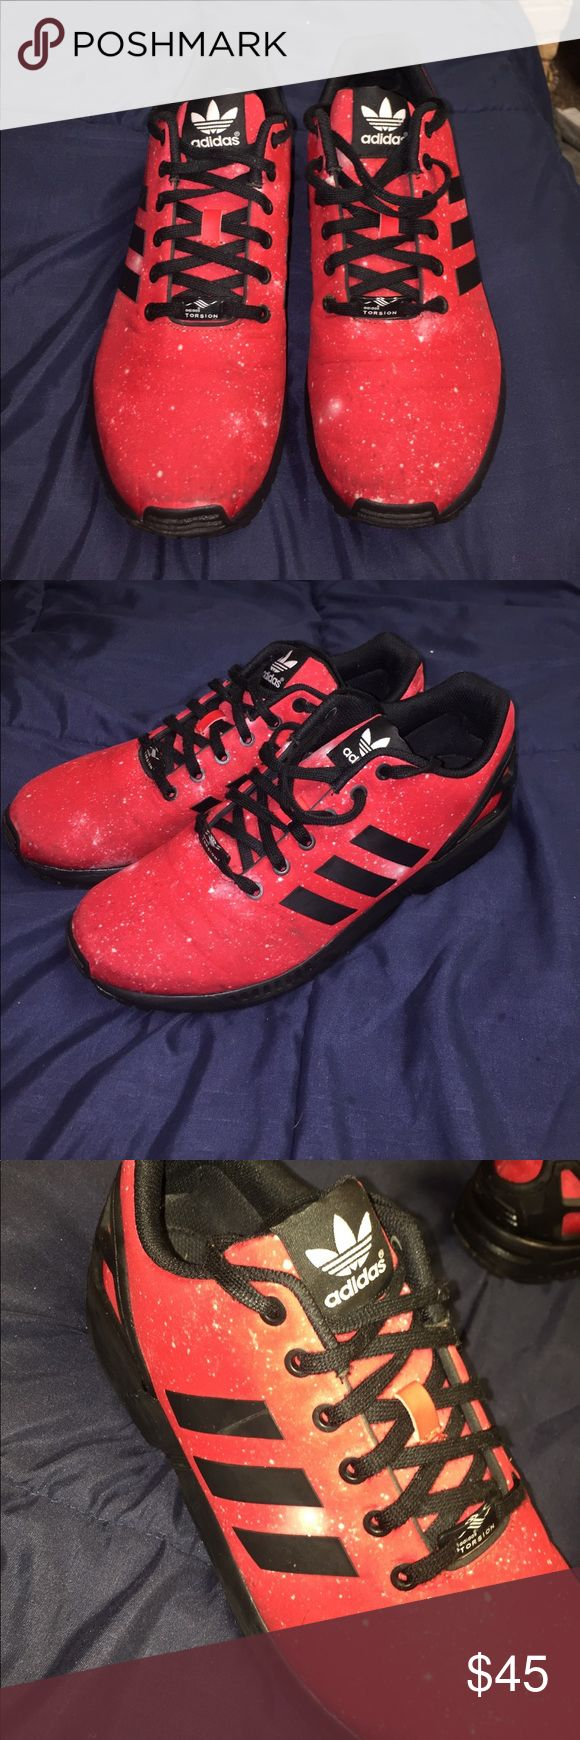 Adidas flux mars edition Good condition. Price describes it well. adidas Shoes Athletic Shoes